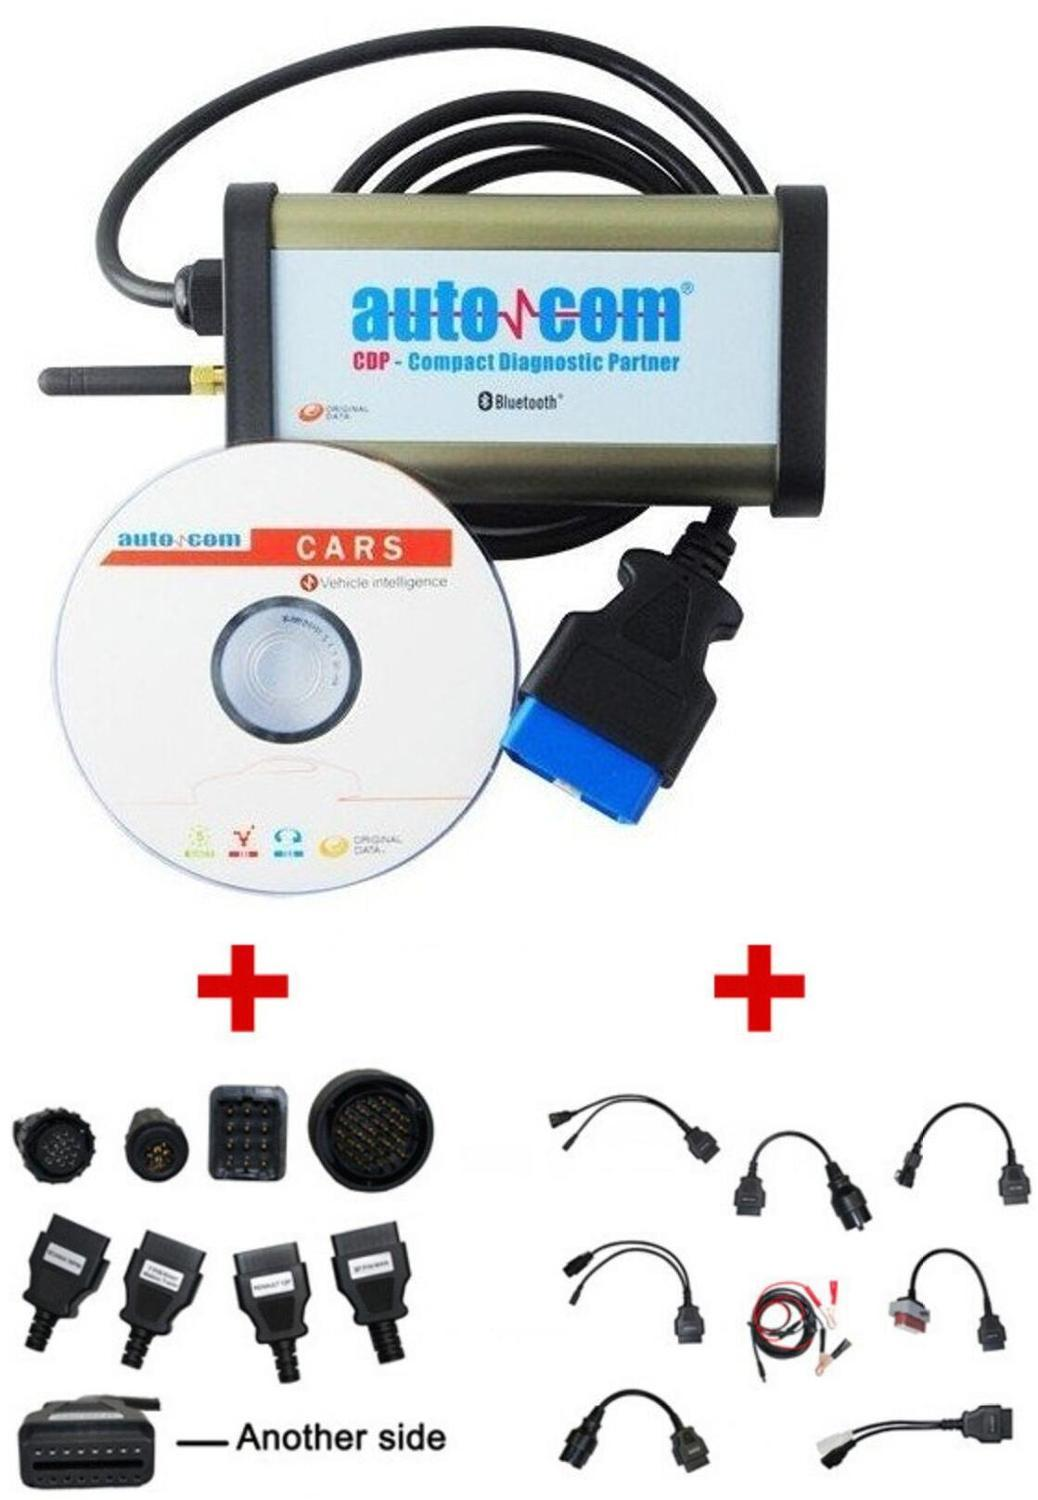 2020 Newest Bluetooth for Autocom CDP Pro Diagnostic 3 in 1 for Cars & Trucks Plus Full Cables & Truck Cables--DHL Free Shipping